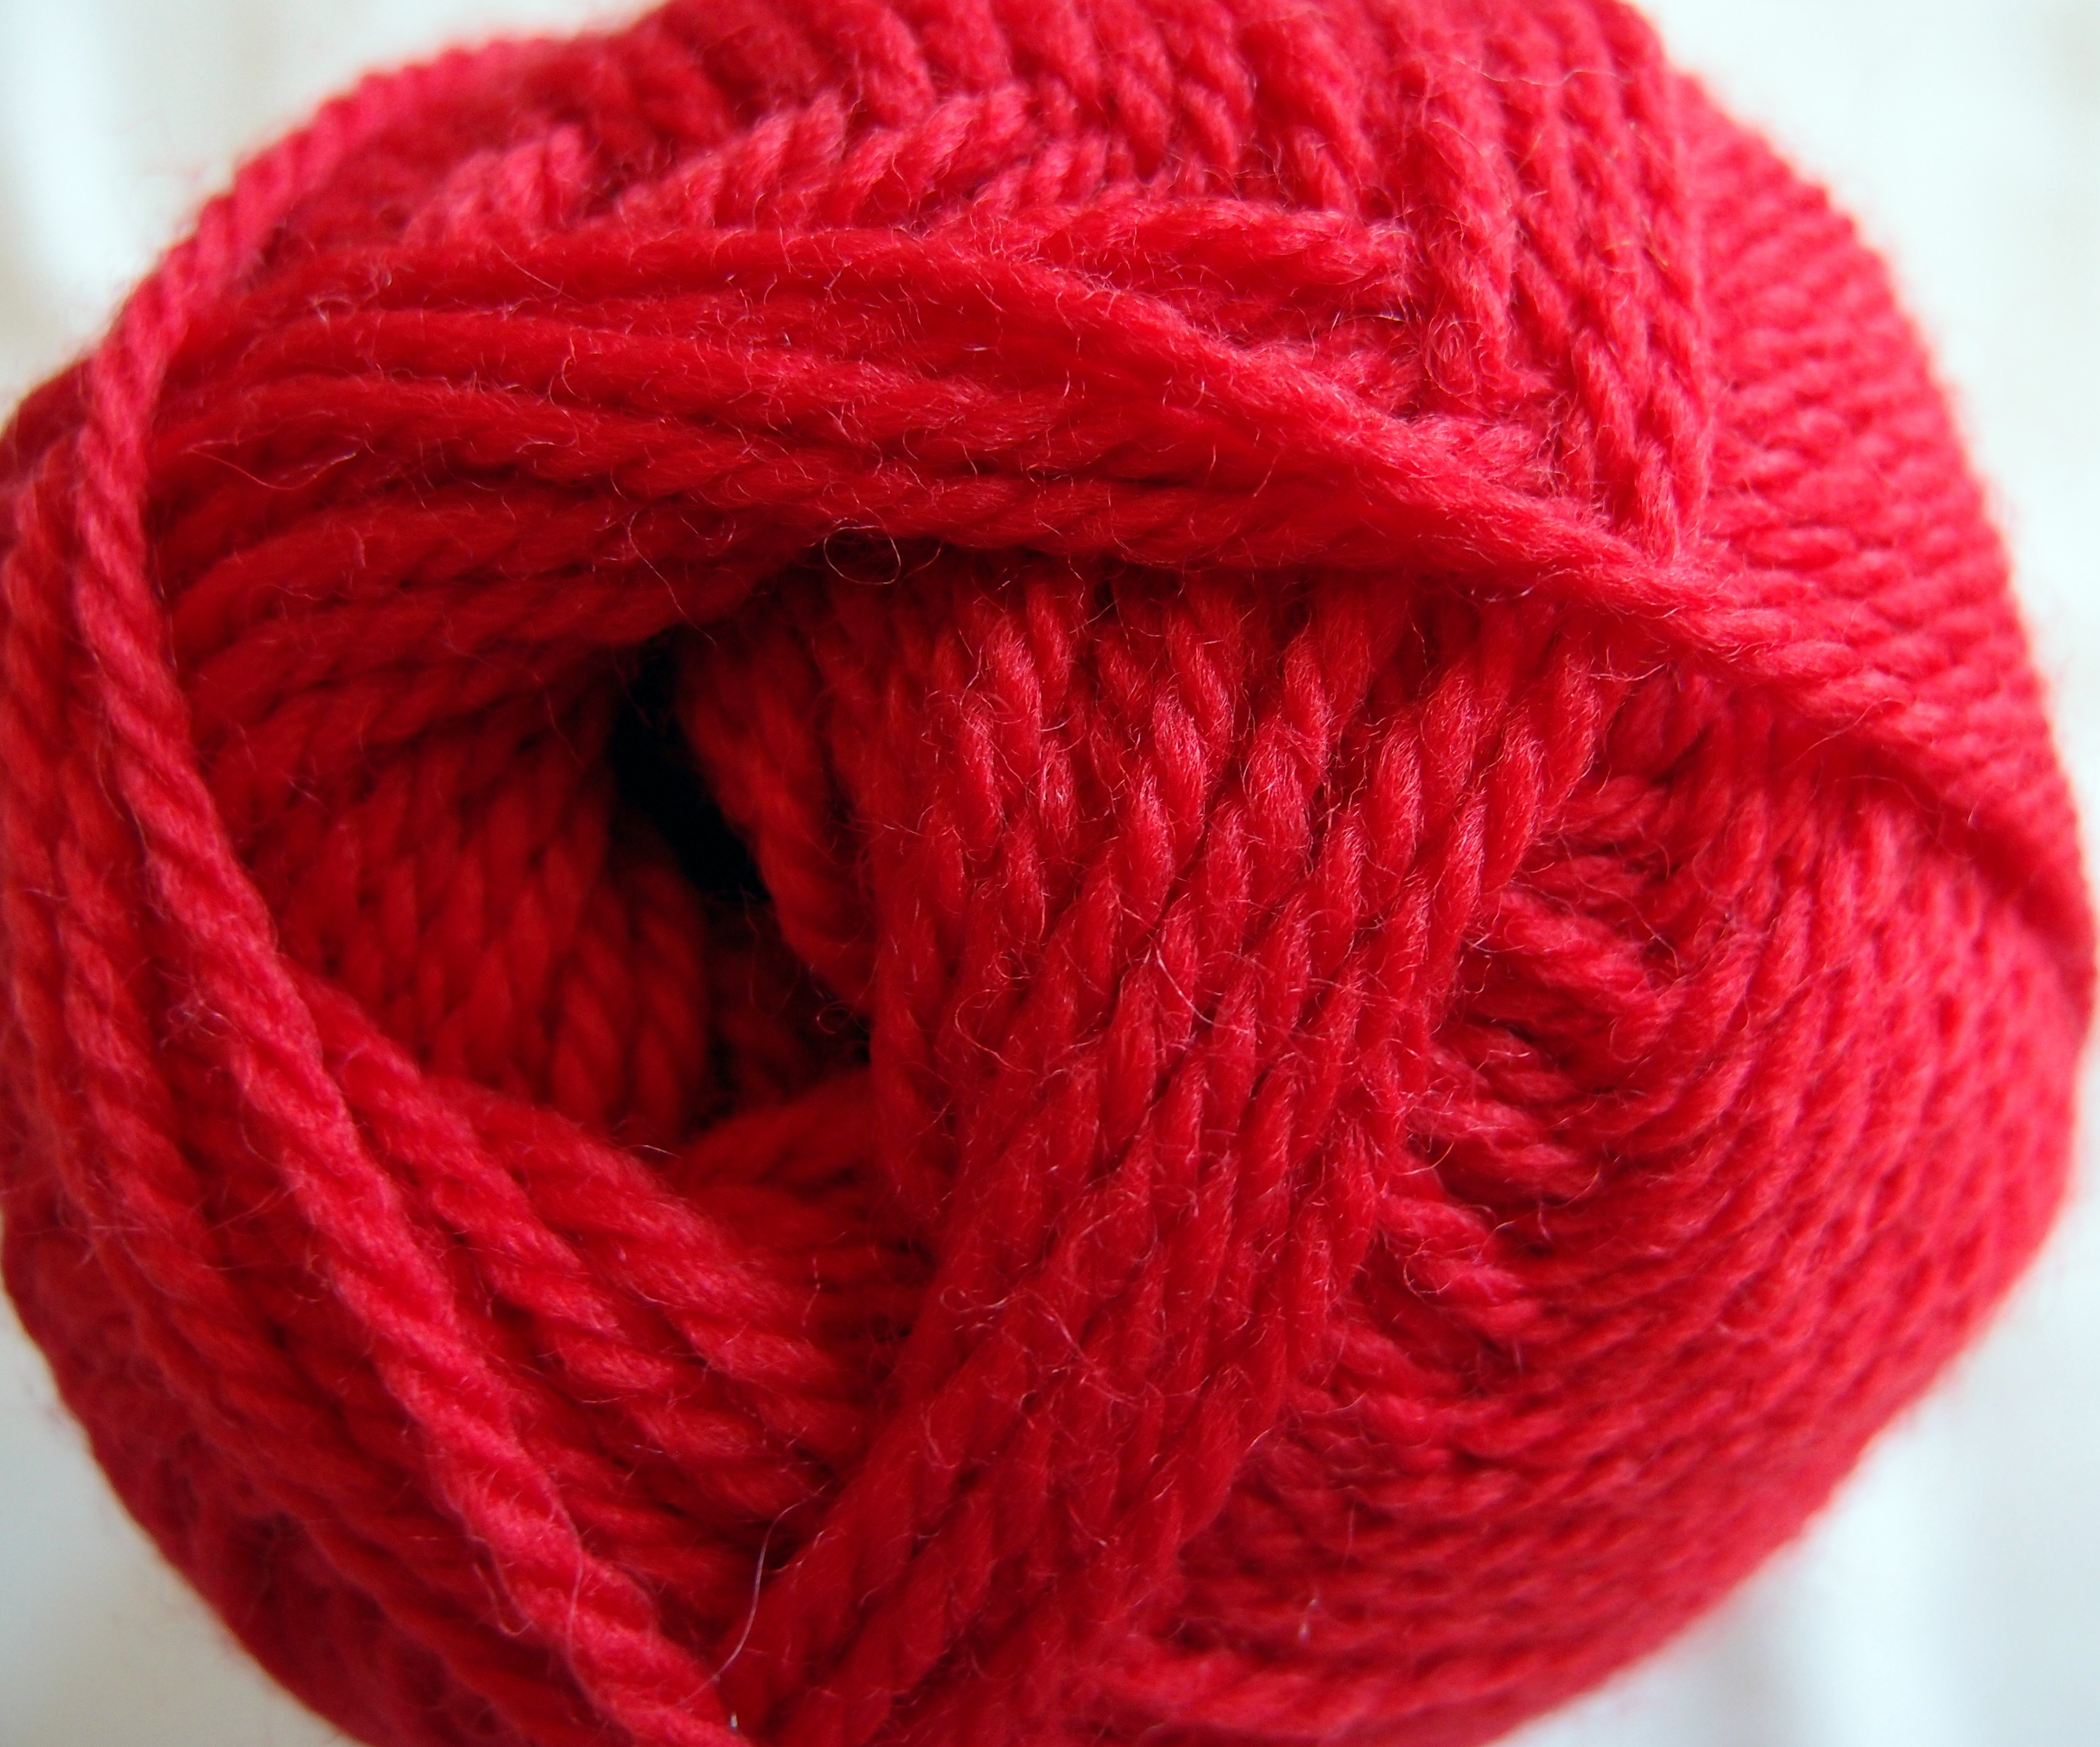 Knitting Meaning In Tagalog : File:worsted wool yarn.jpg wikimedia commons